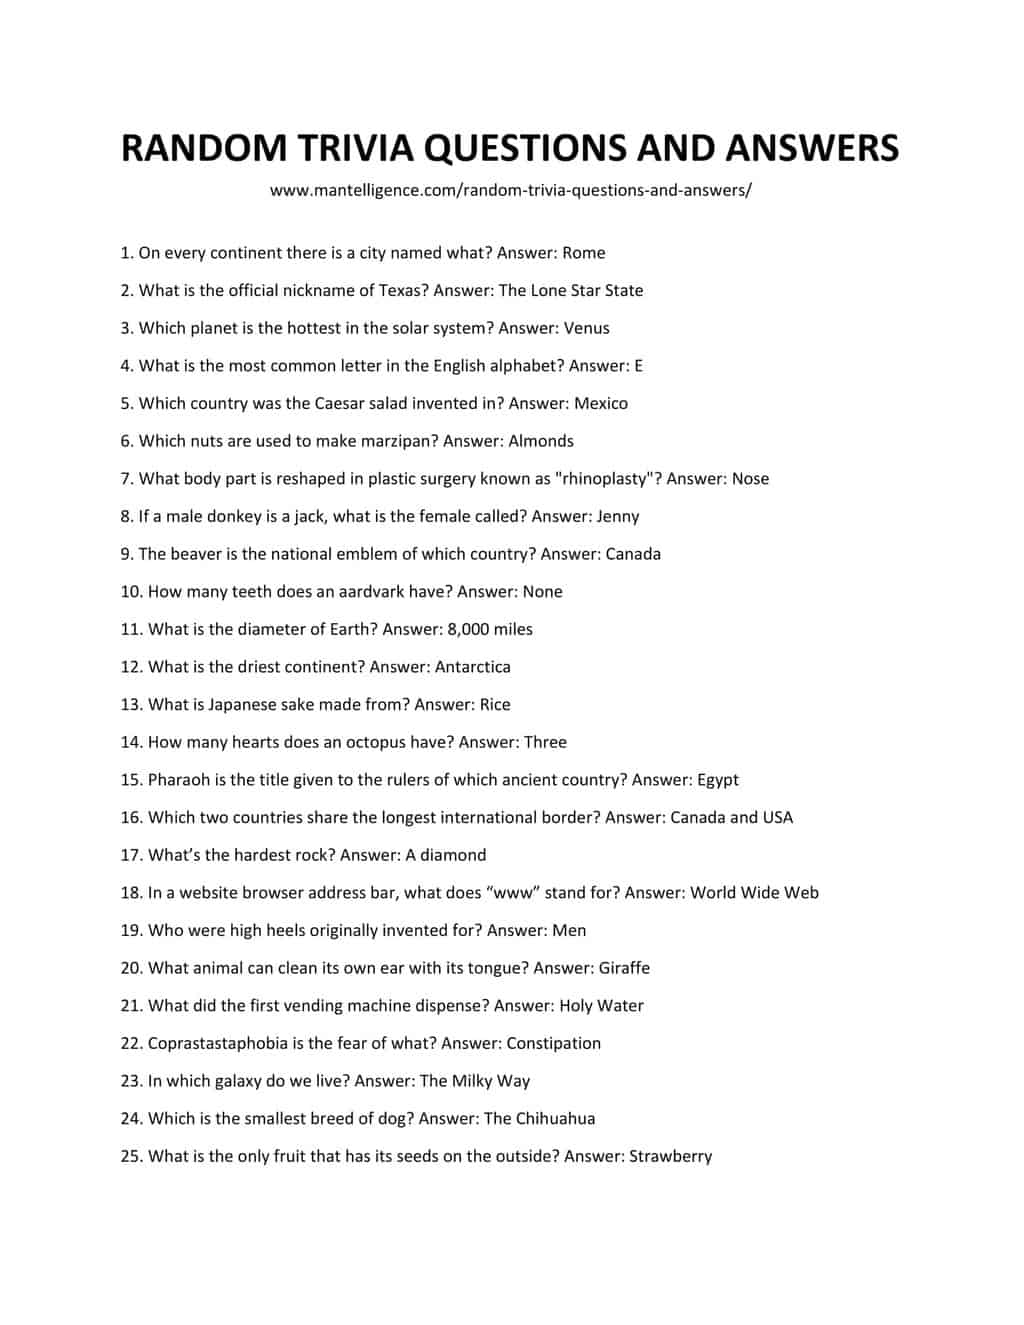 Downloadable List of Random Trivia Questions and Answers